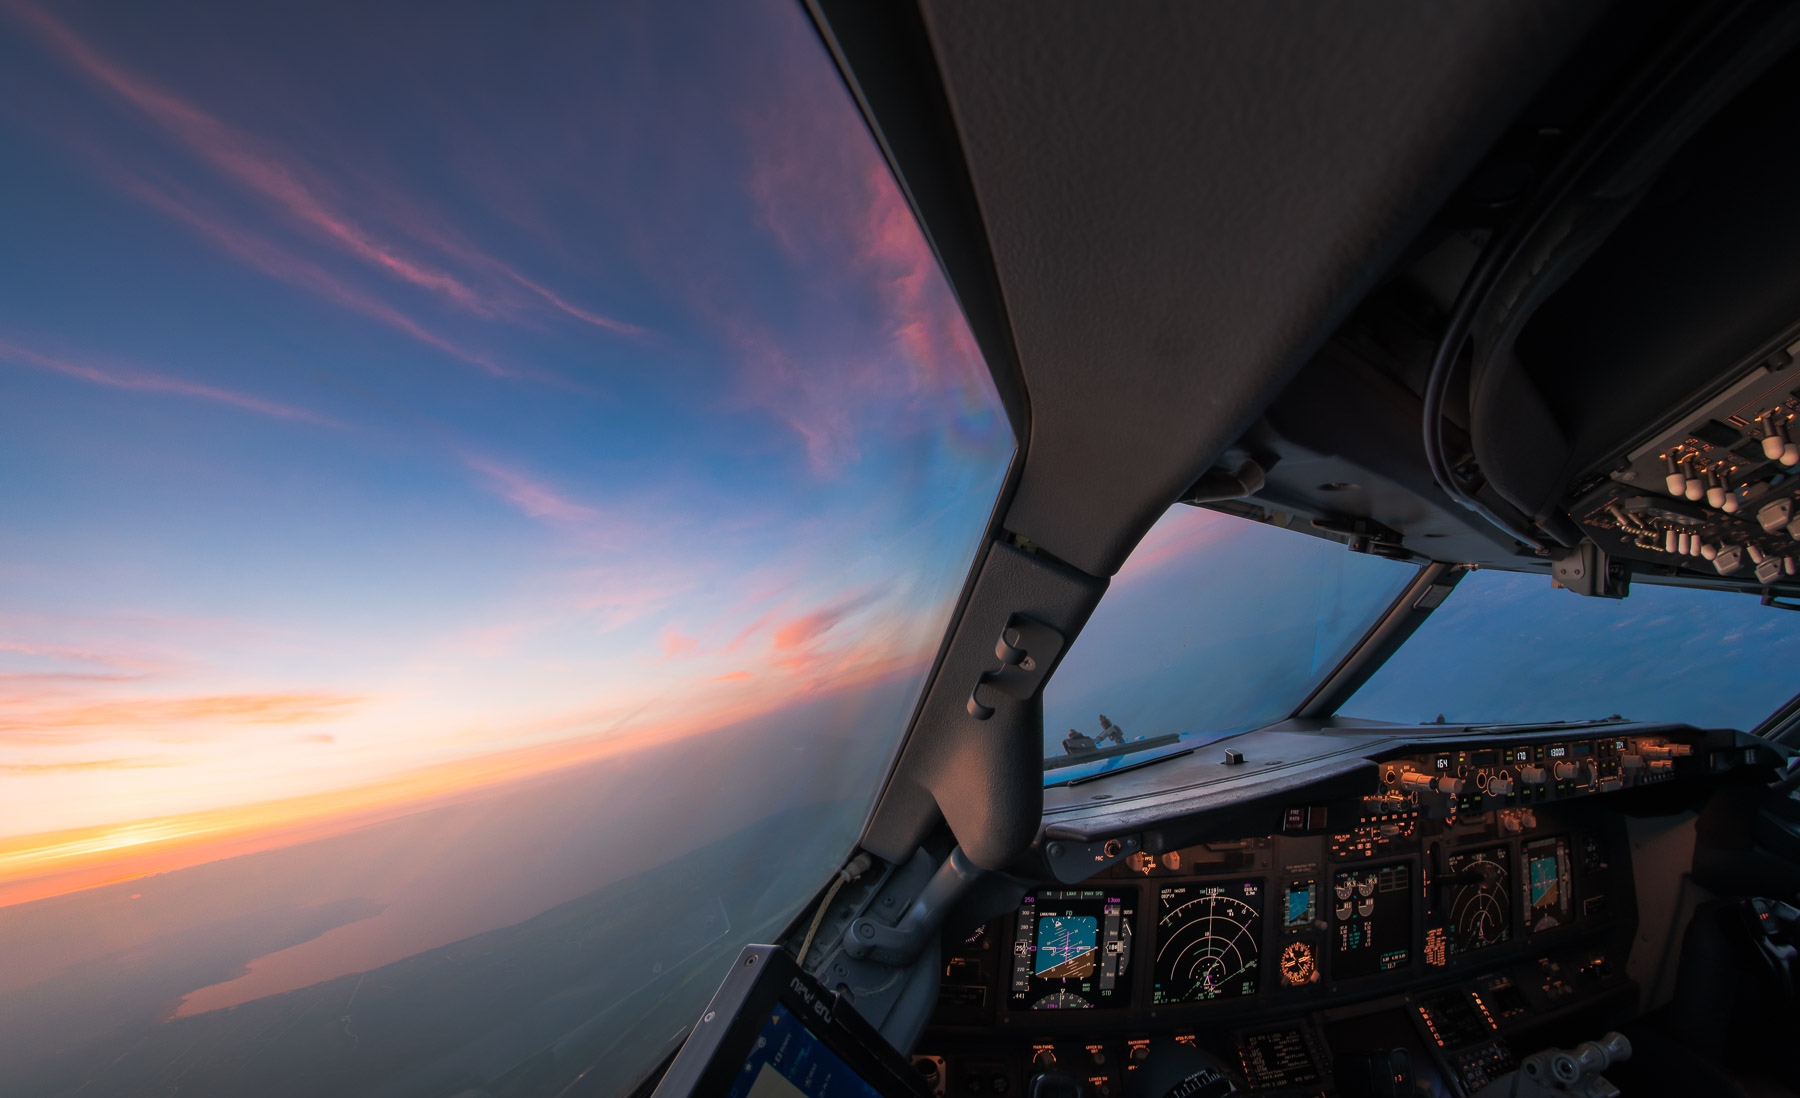 Good morning from the cockpit